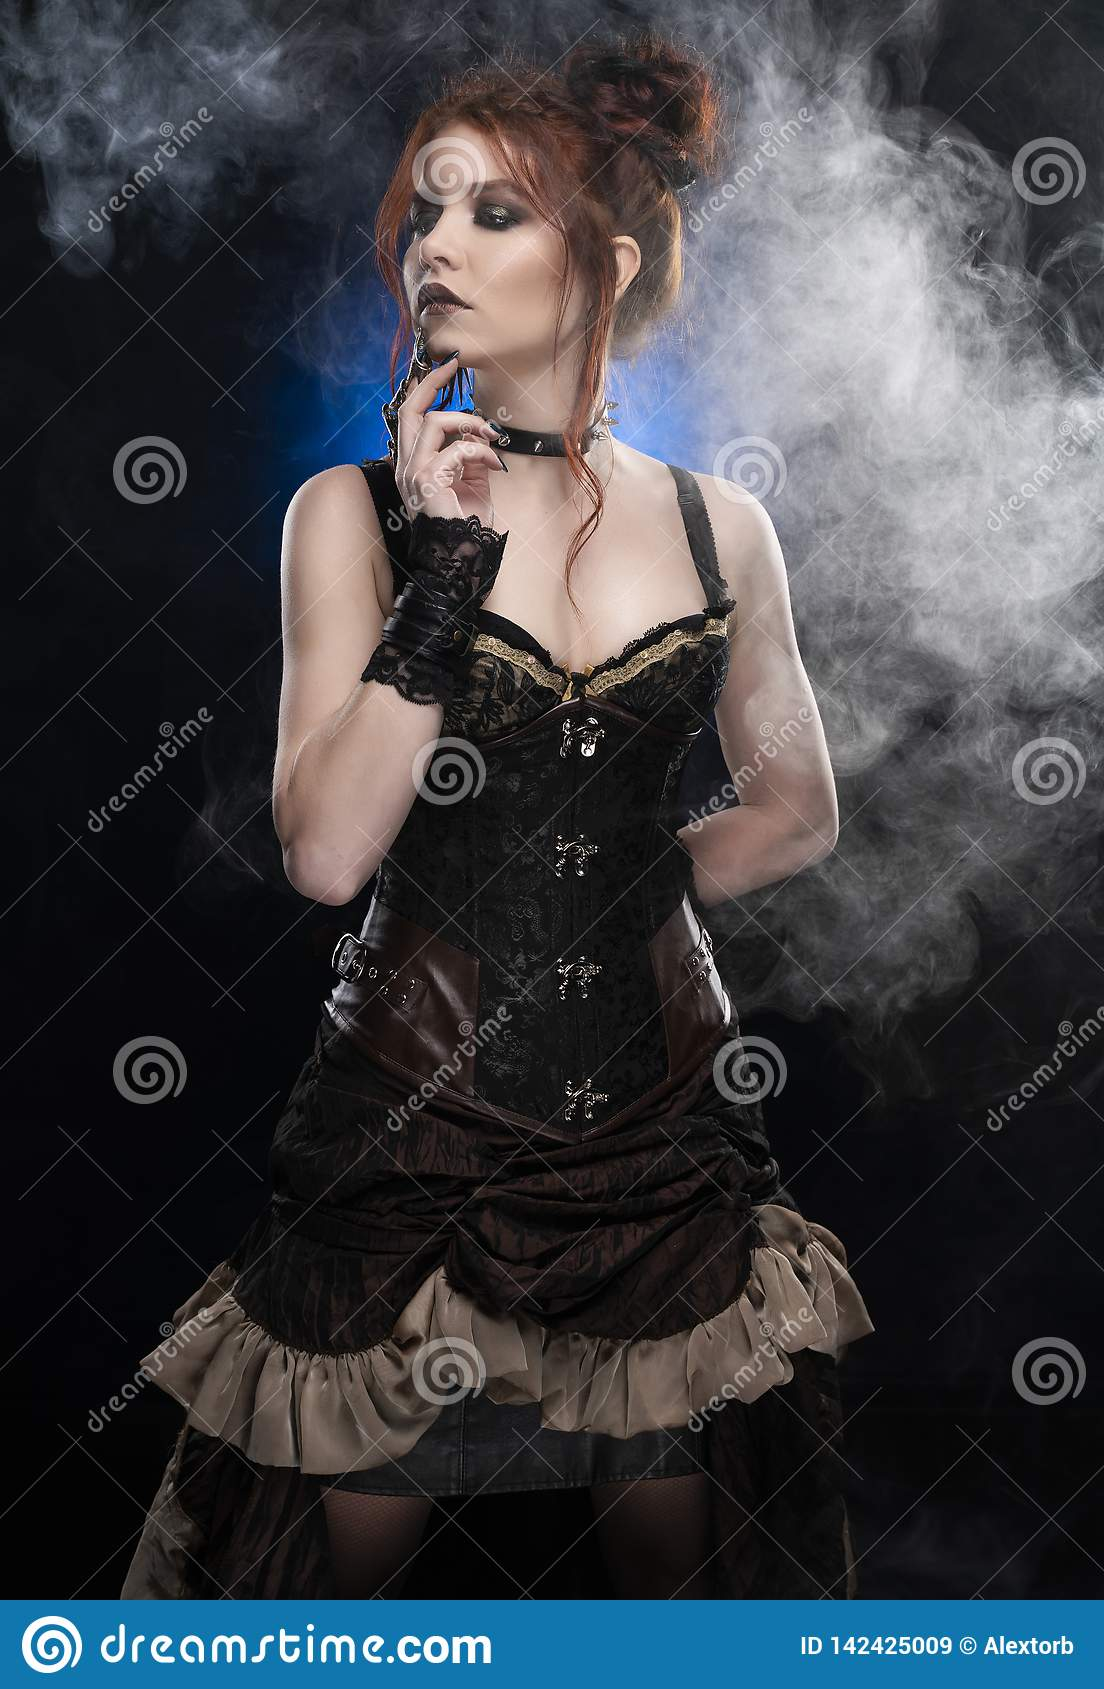 A beautiful redhead cosplayer girl wearing a Victorian-style steampunk costume with a big breast in a deep cleavage standing